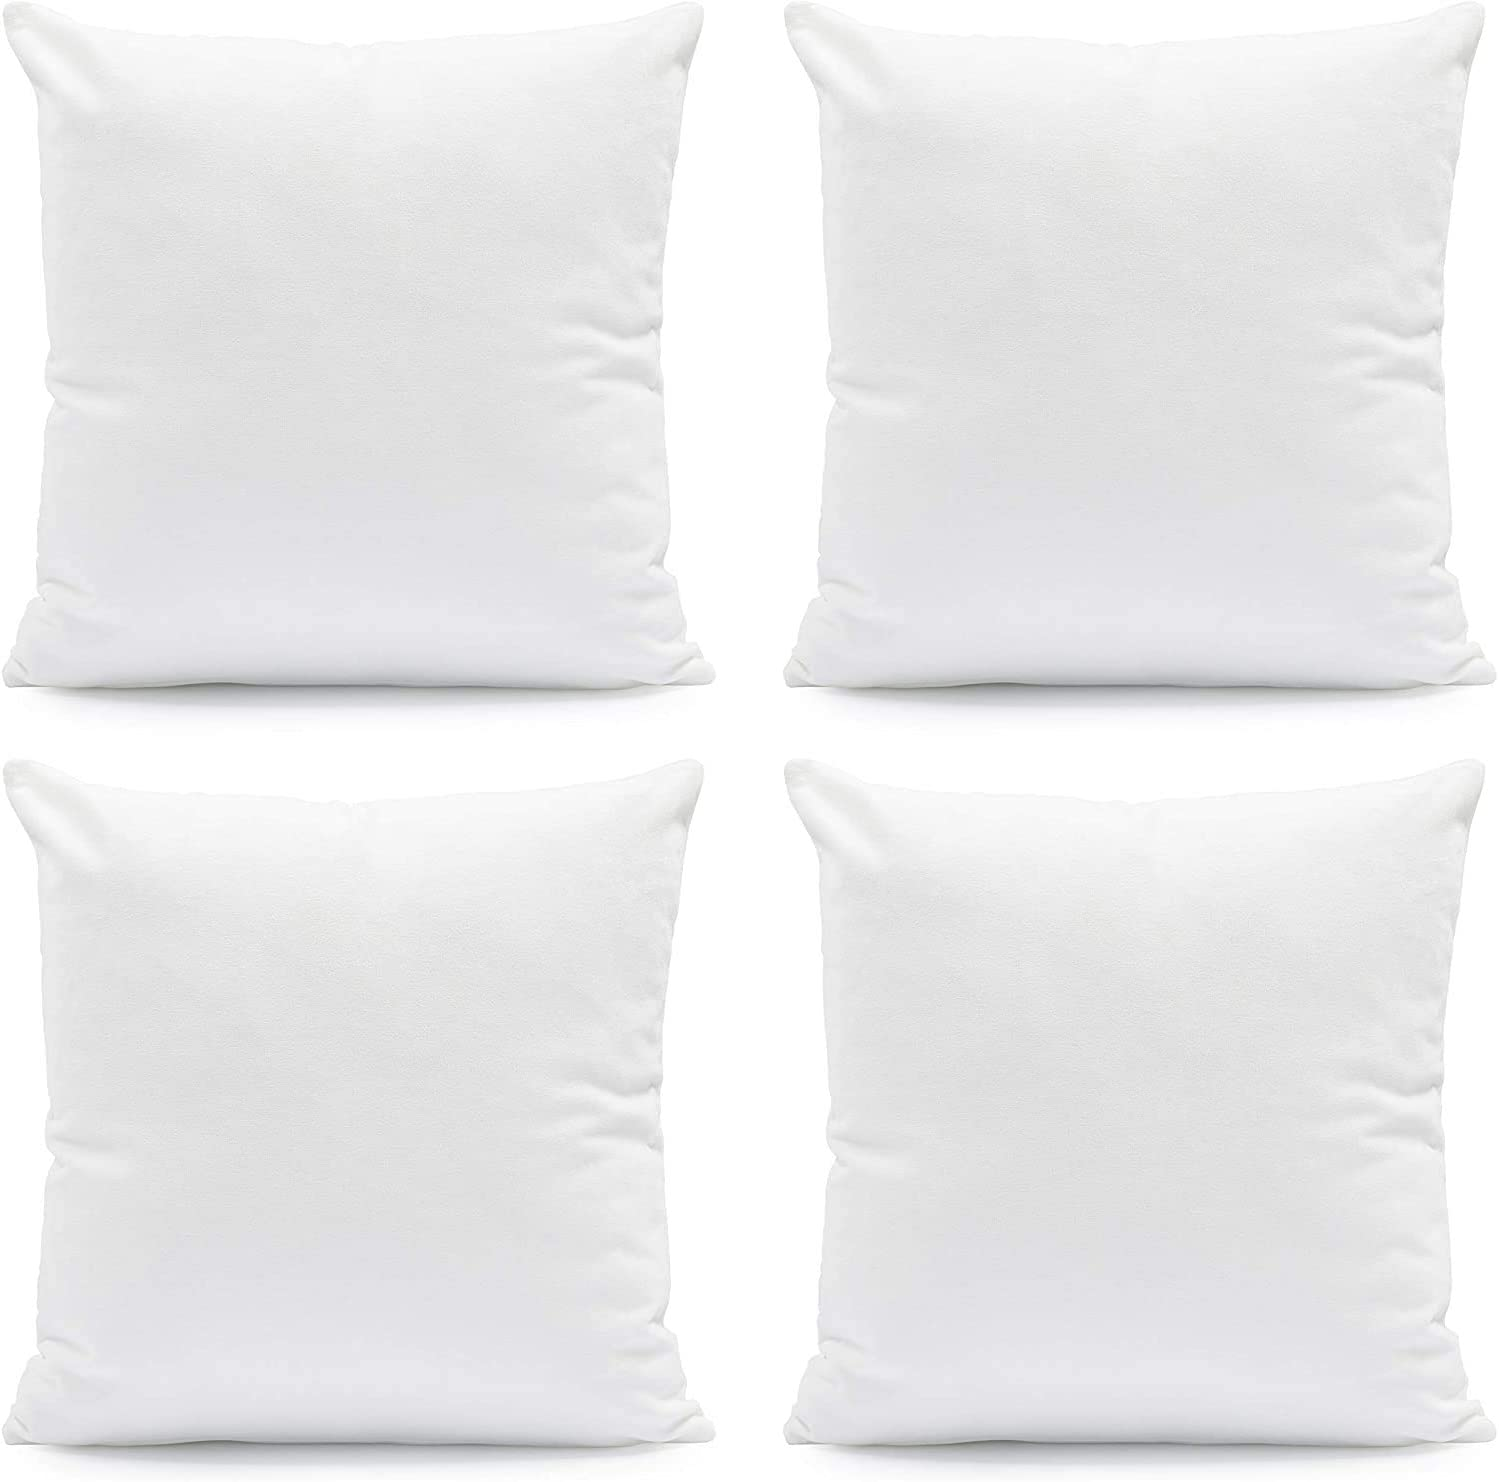 Hannah Linen Throw Pillows - 16x16 of Set Thr Inserts Popular shop is the lowest price challenge Sales for sale 4 Pillow